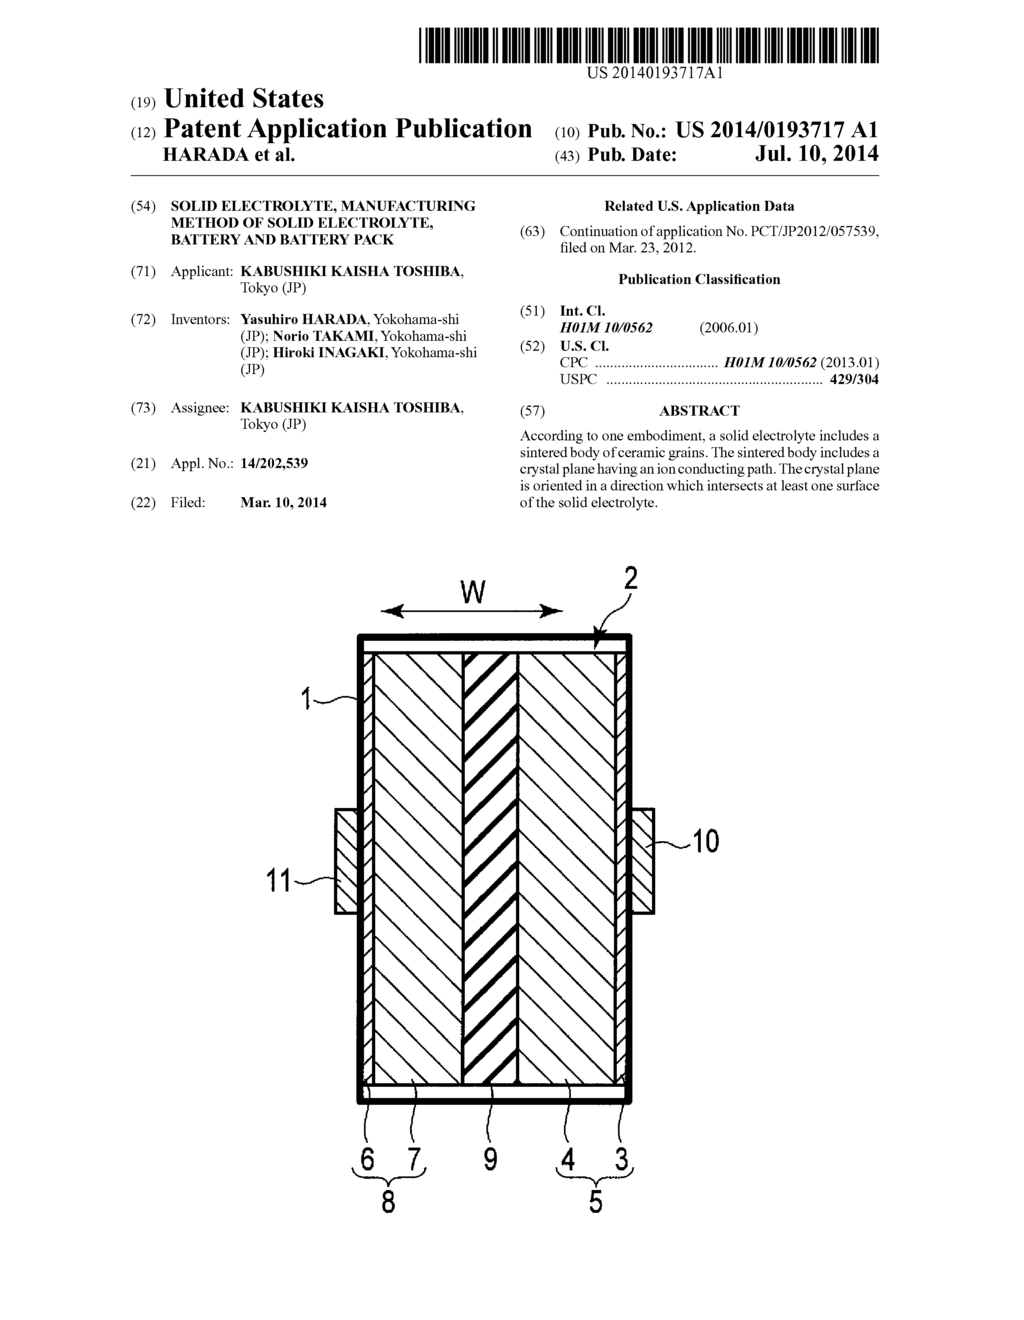 SOLID ELECTROLYTE, MANUFACTURING METHOD OF SOLID ELECTROLYTE